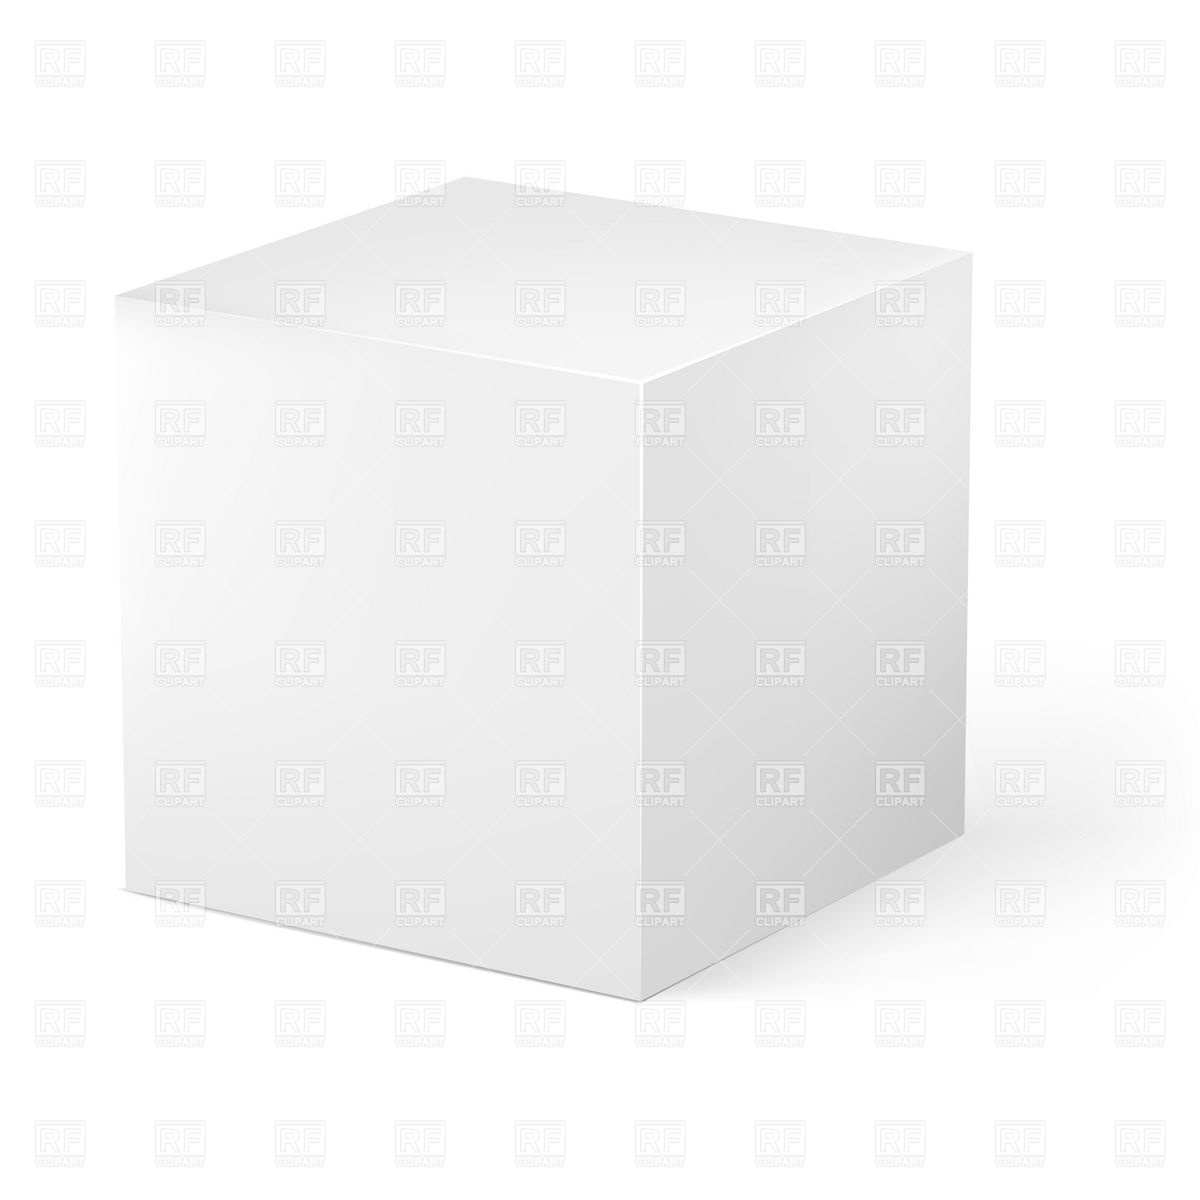 Blank white cube on white background 16313 Objects download Royalty 1200x1200